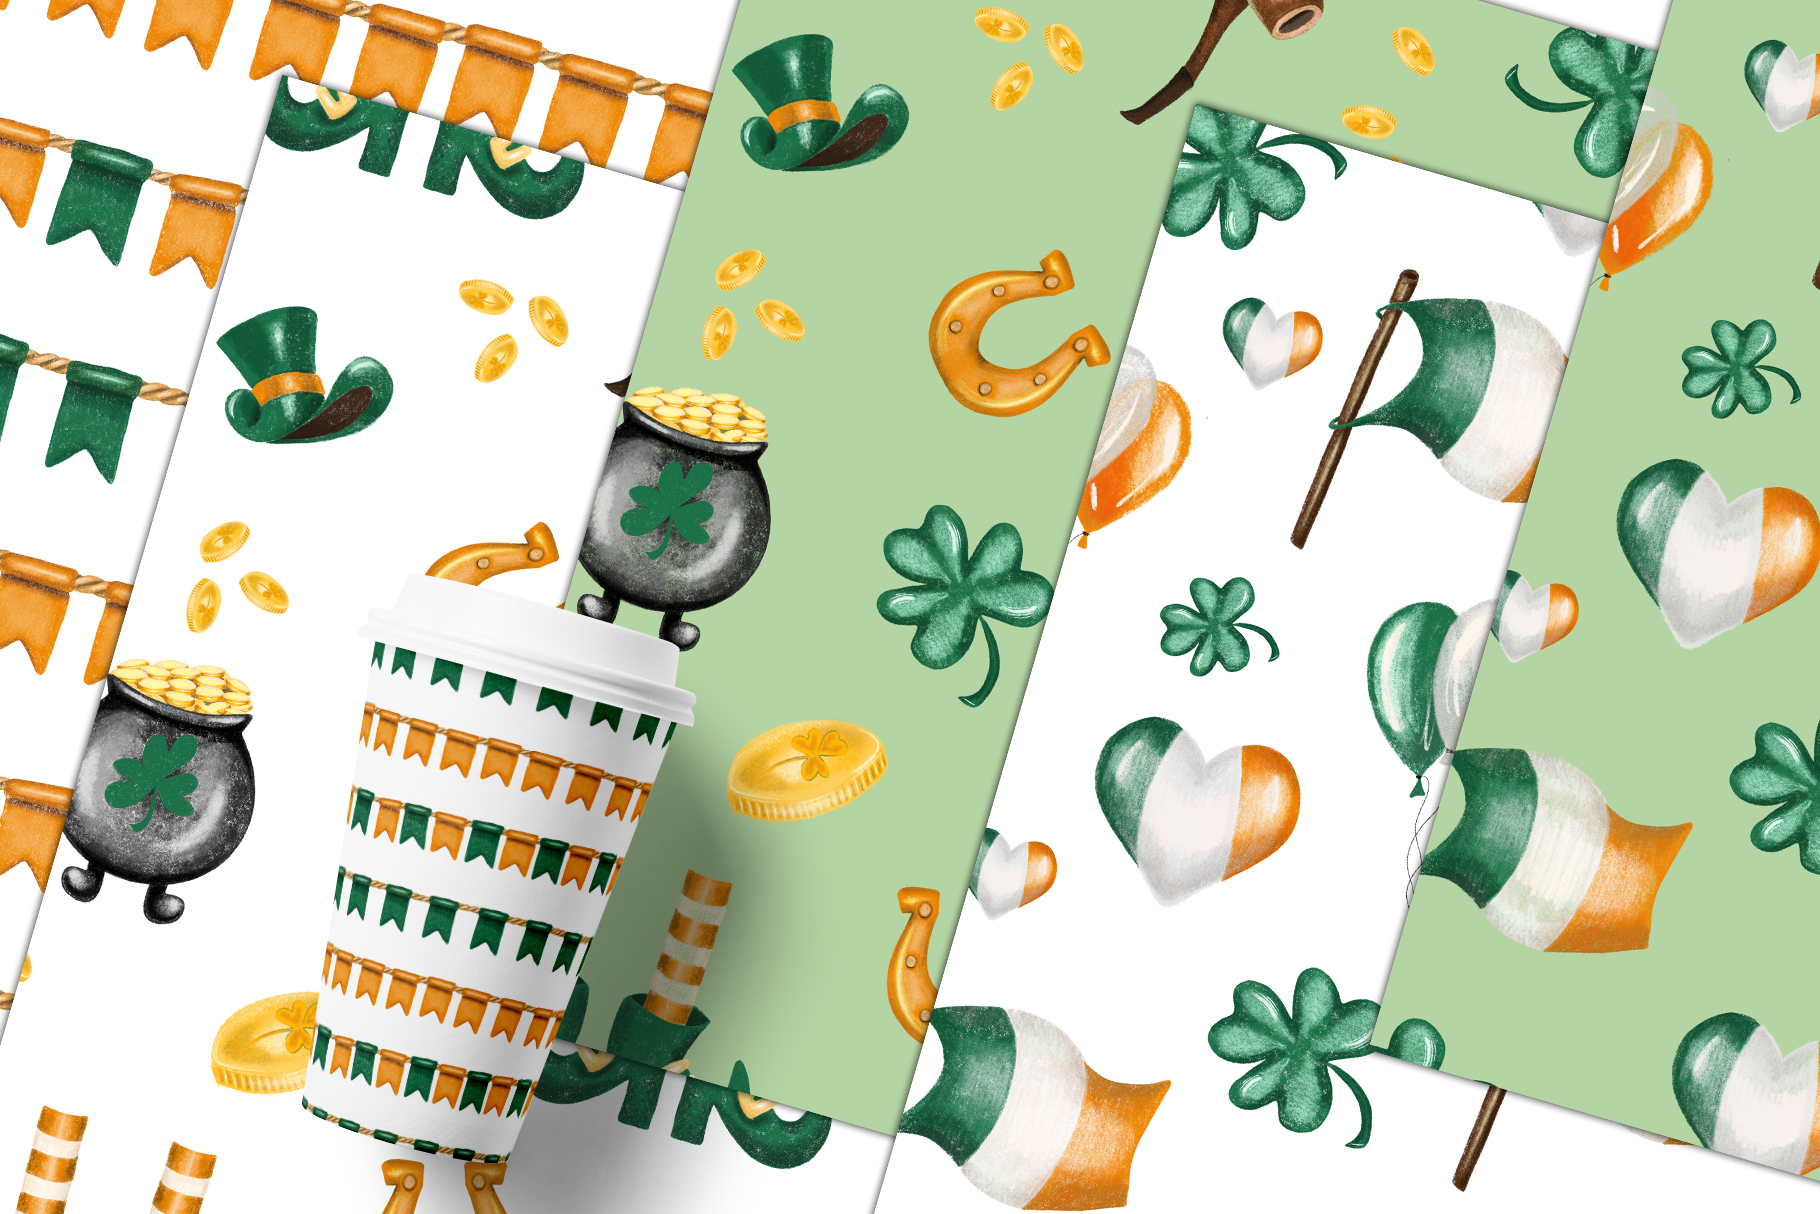 St. Patrick's Day clipart example image 6